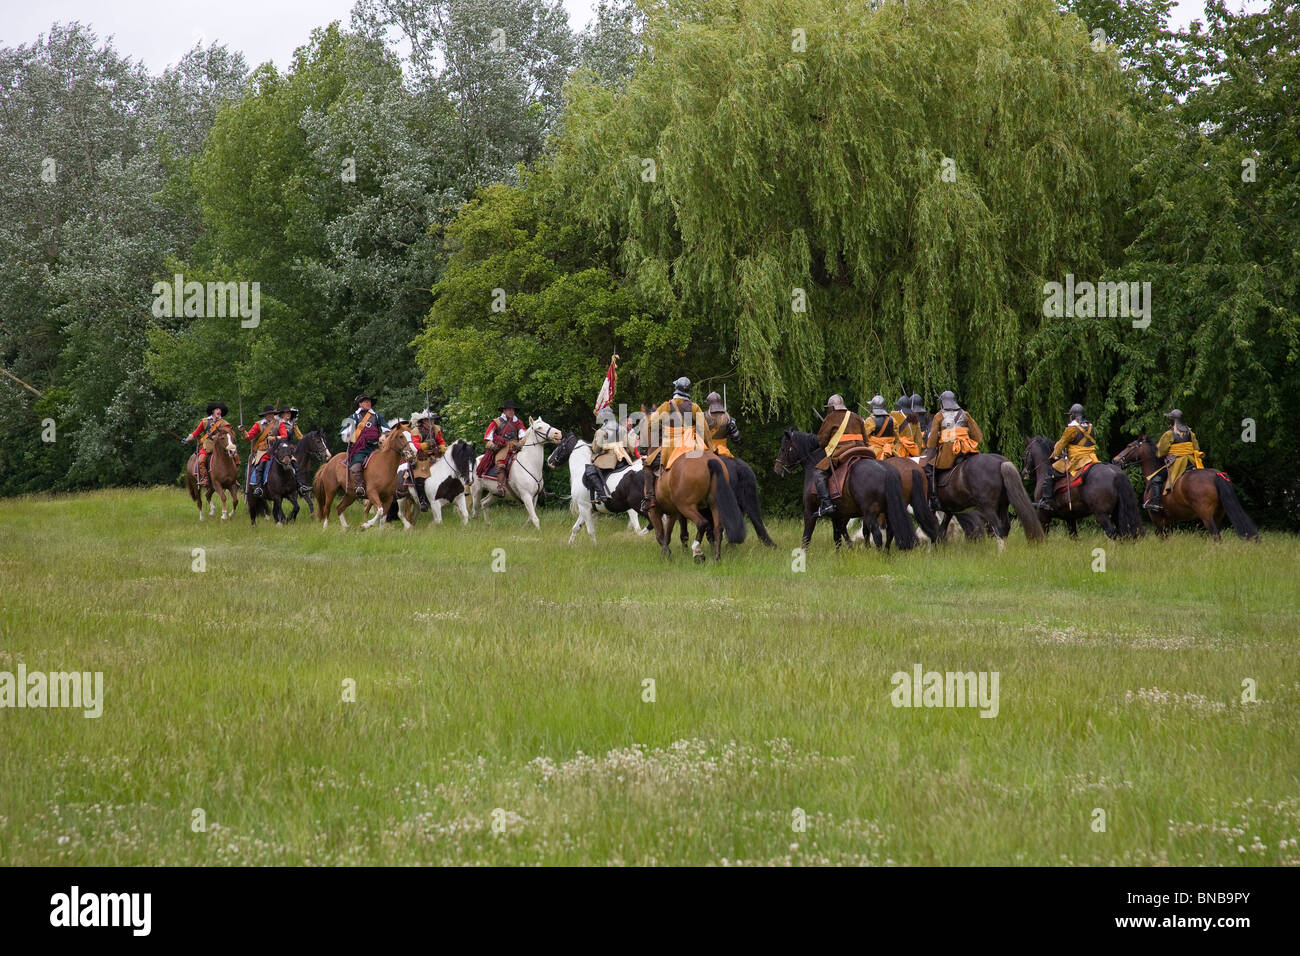 Cavalry of the Kings Army and the Roundhead Association come face to face during a skirmish. - Stock Image